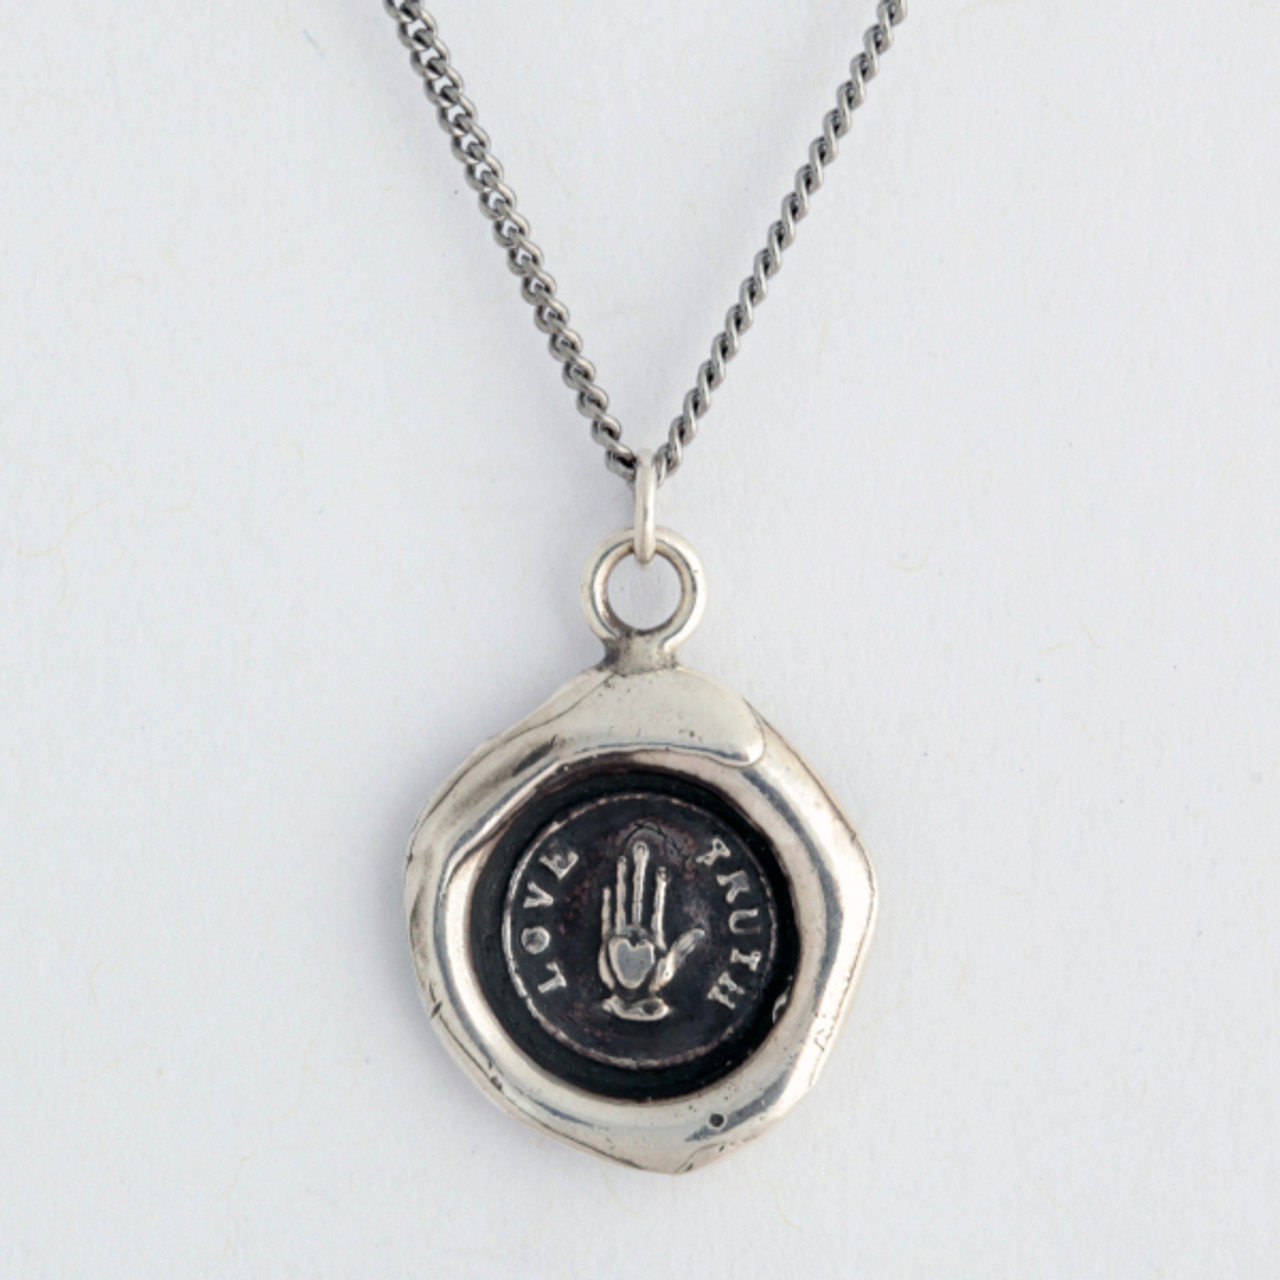 Pyrrha Love Truth Talisman Necklace  83746.1423079004.jpg c 2 imbypass on 27940657fbbf